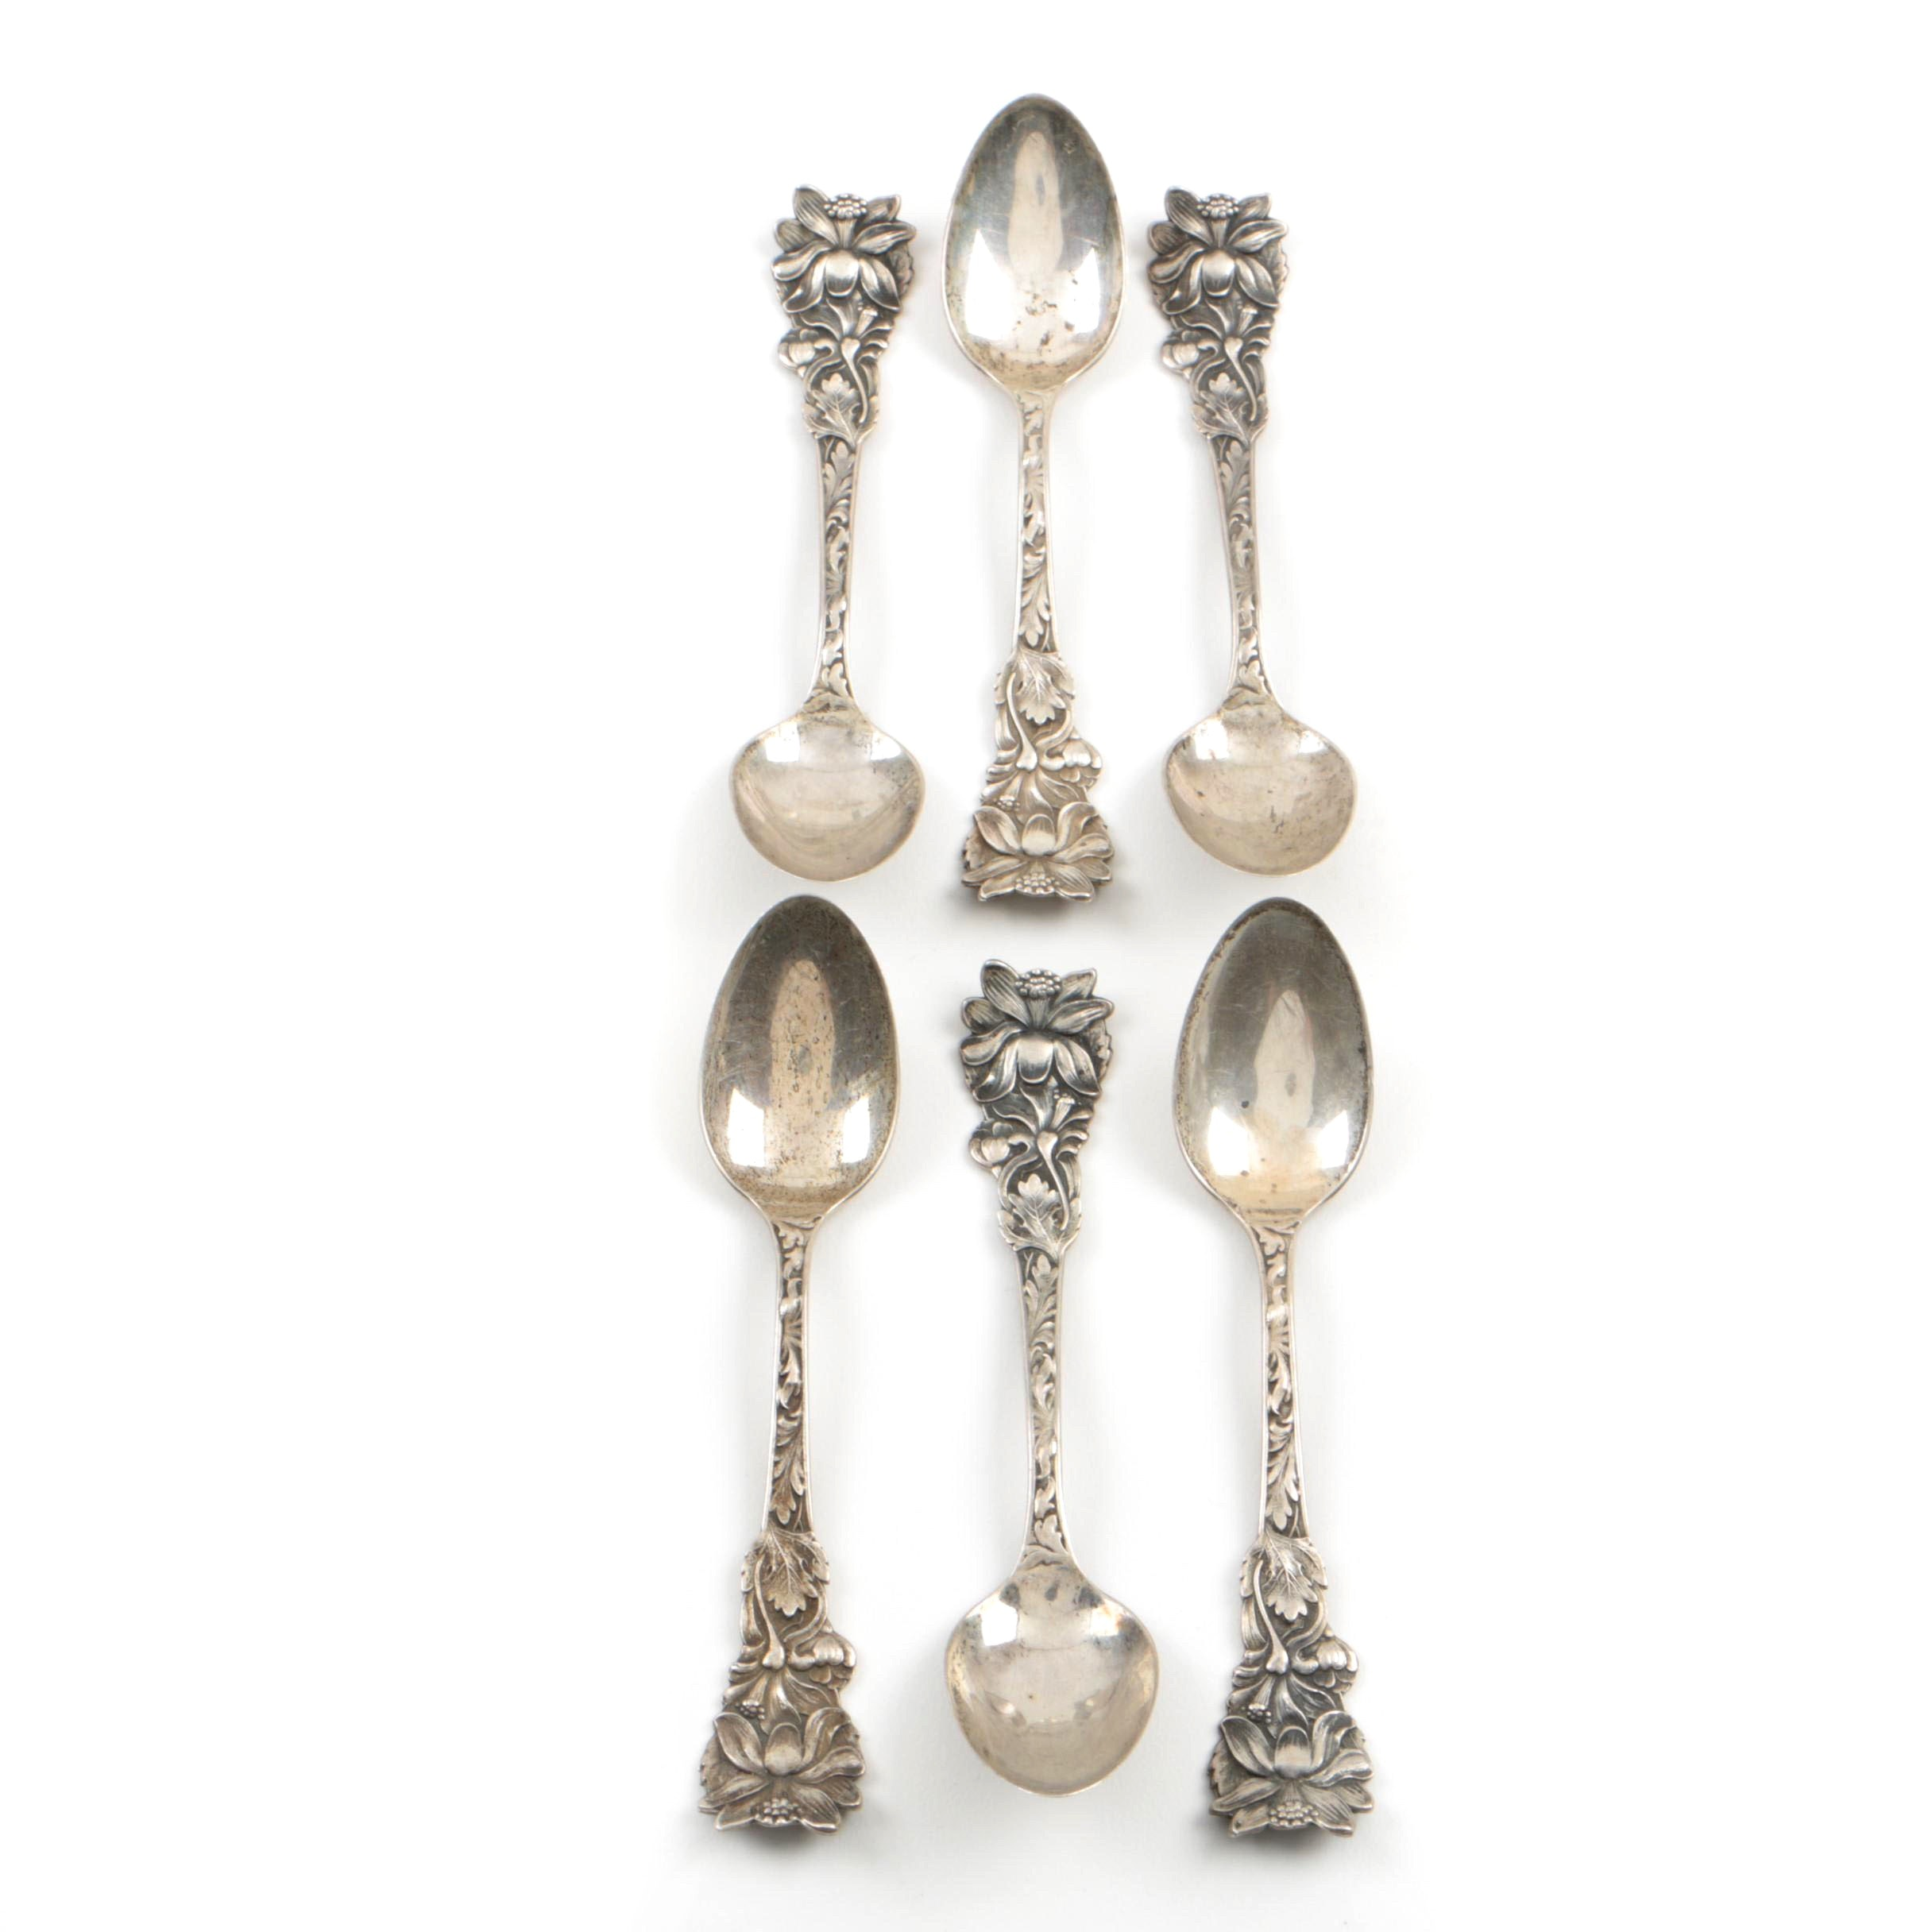 Six Antique Sterling Silver Demitasse Spoons by Saart Brothers